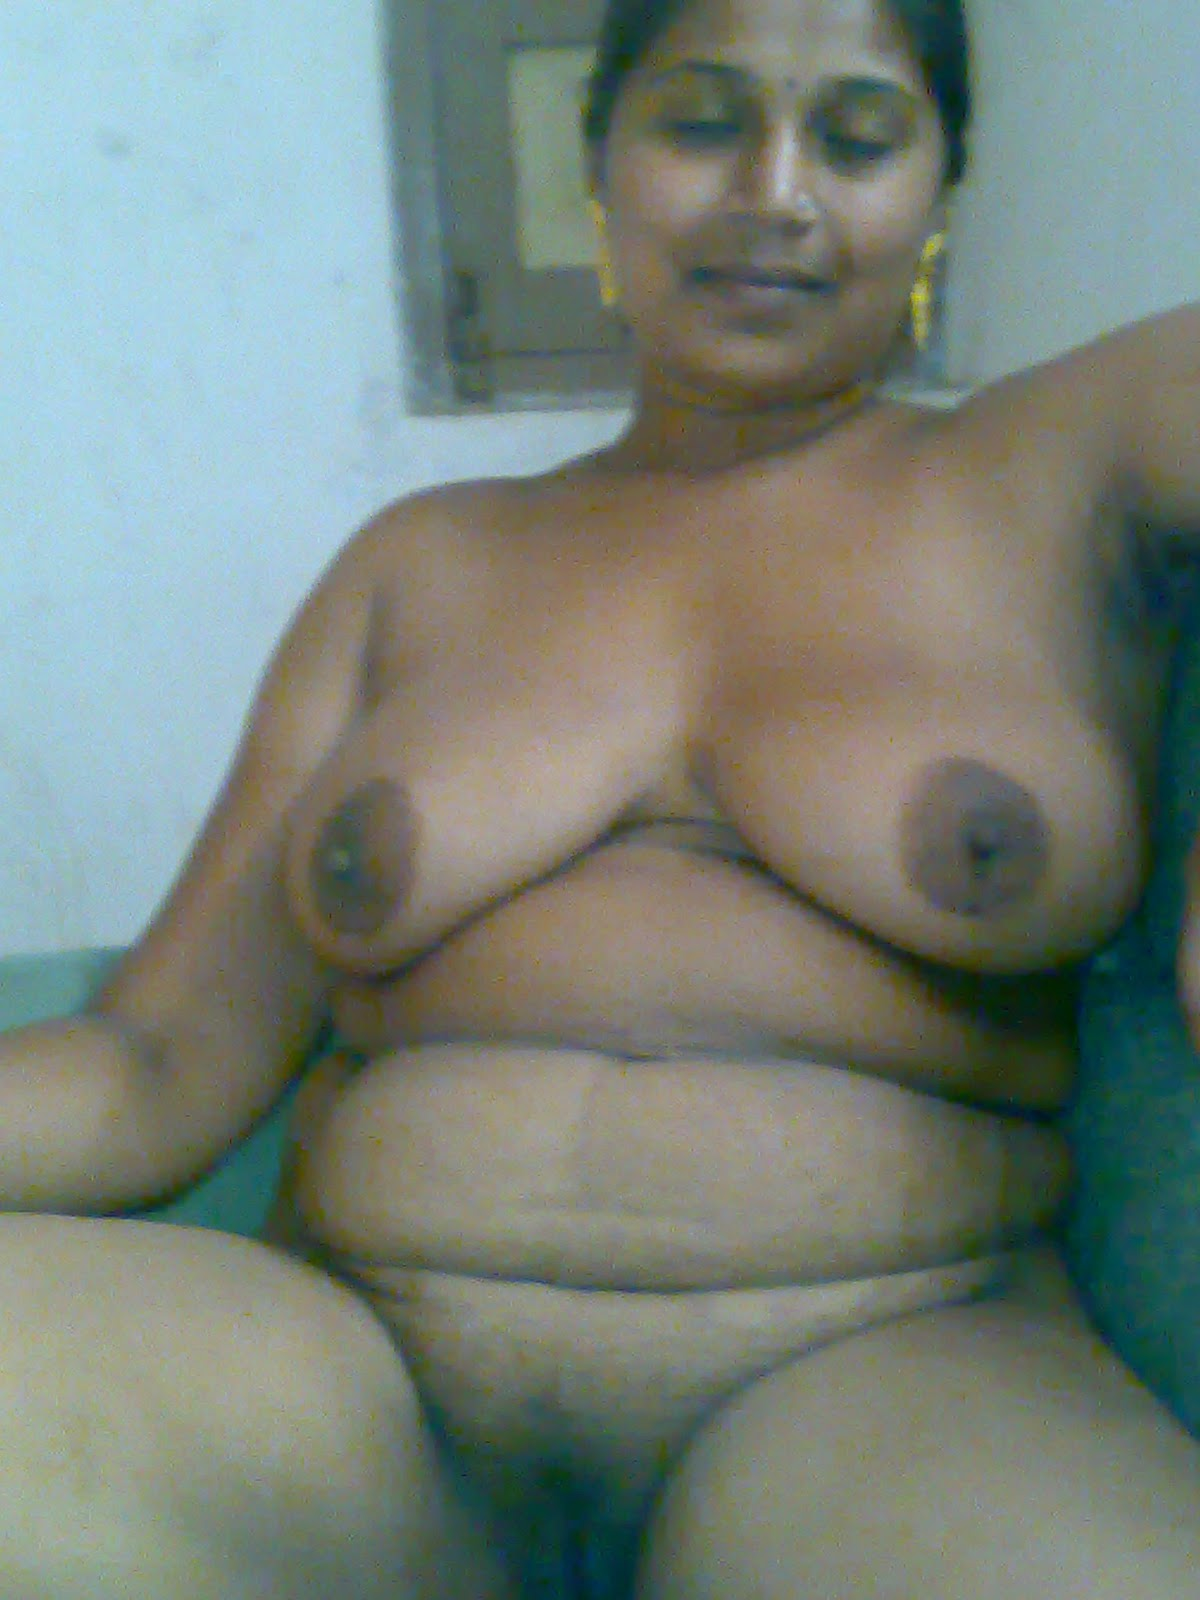 South indian sex video download-5709